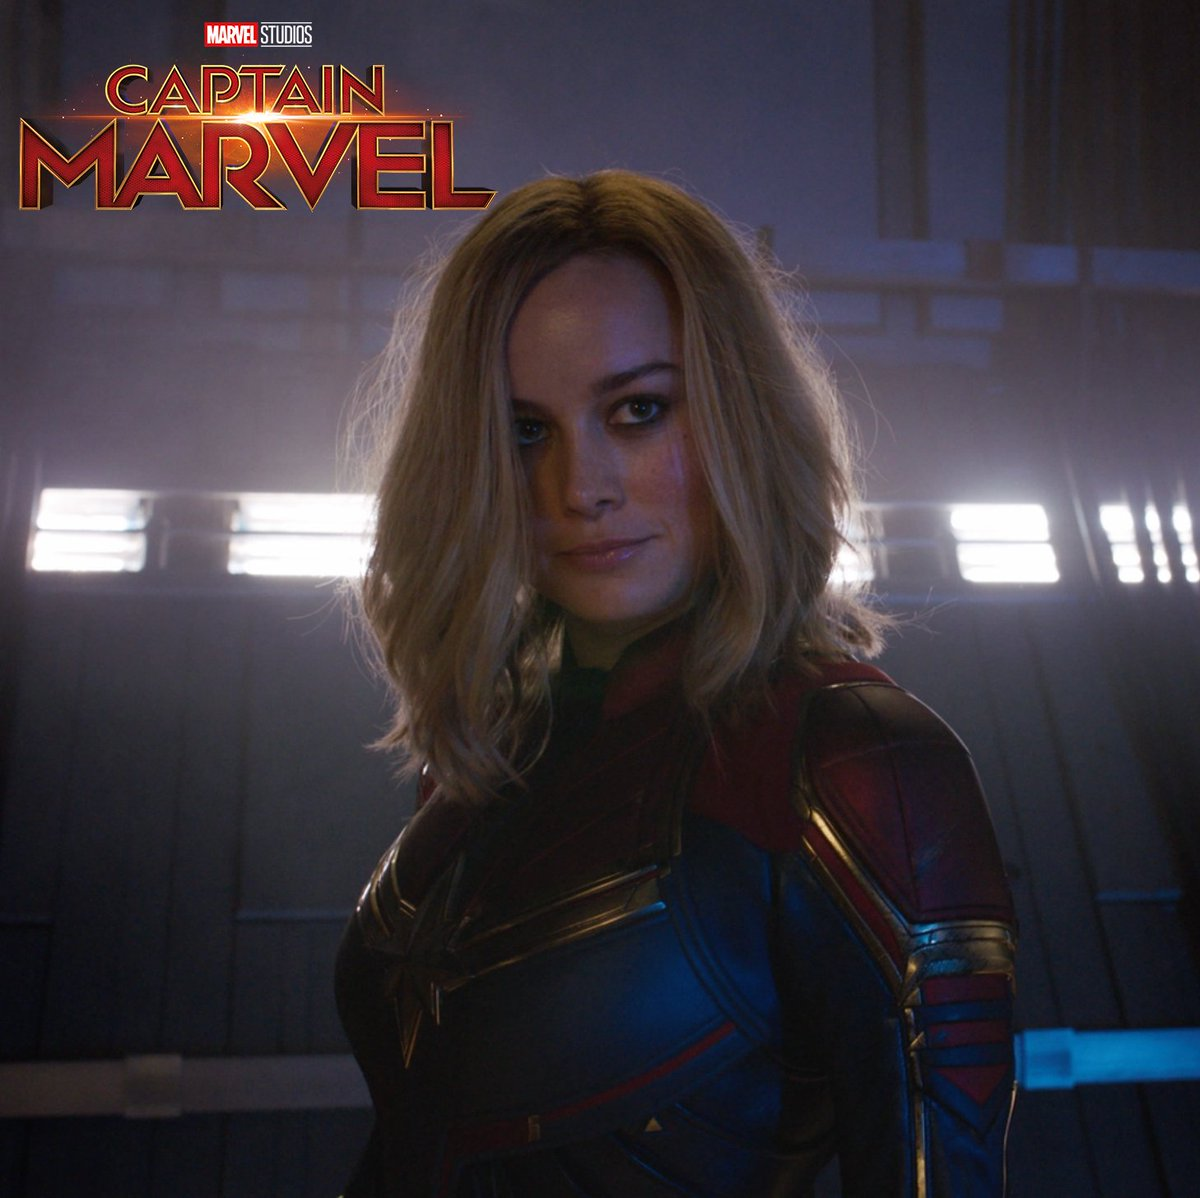 HIGHER. FURTHER. FASTER. Watch the brand new Marvel Studios' @CaptainMarvel spot that aired during the Big Game. See it in theaters March 8. Get tickets now: http://www.Fandango.com/CaptainMarvel